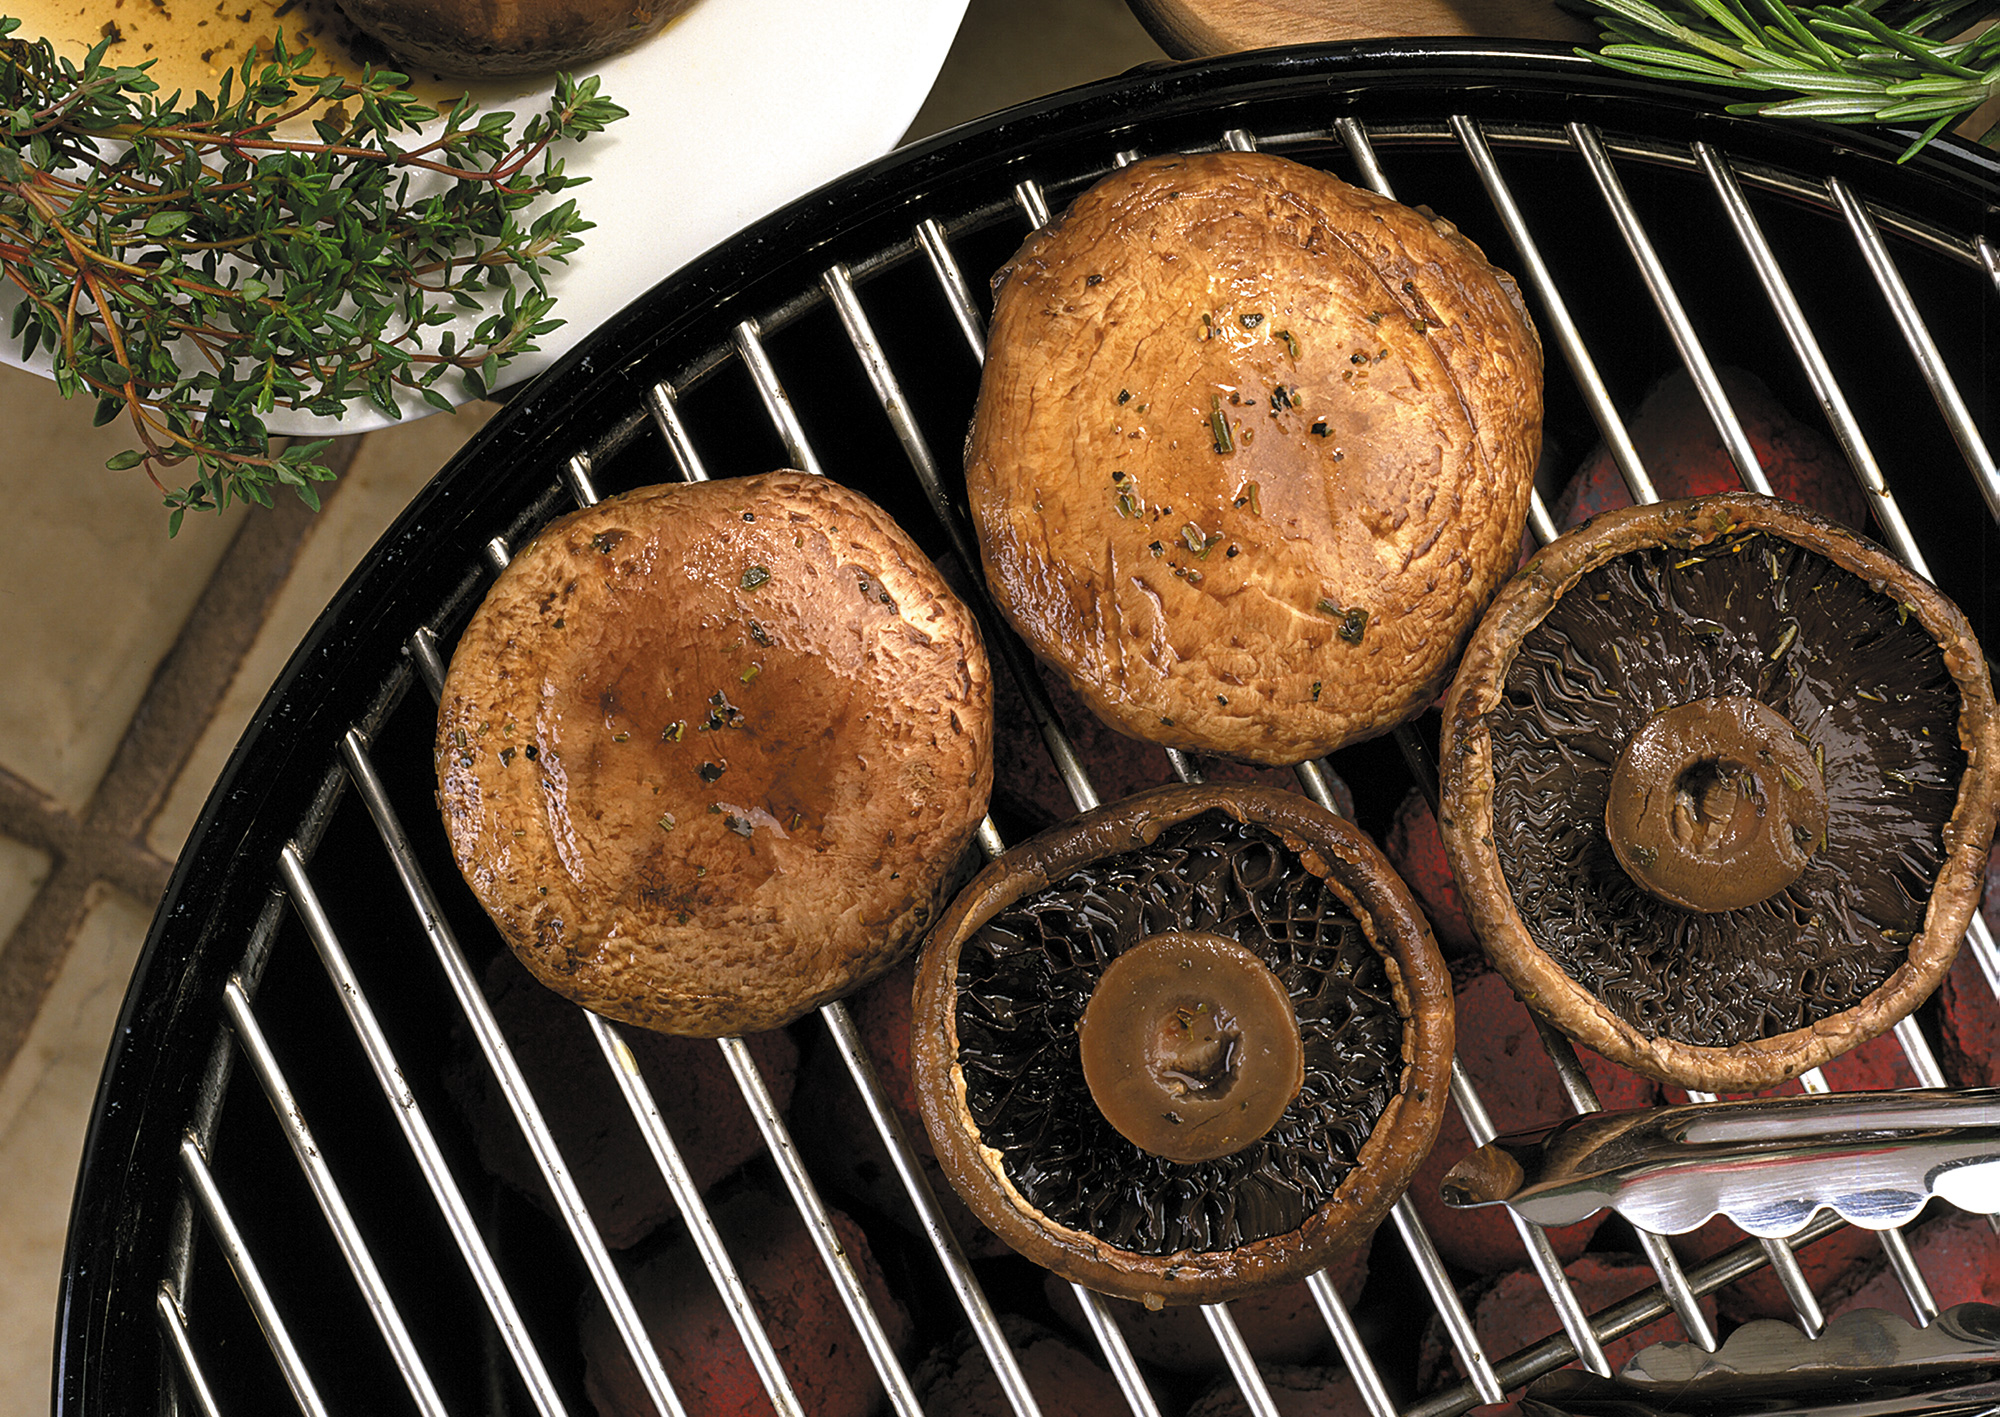 Grilled Portabella Caps Stuffed with Herb Cheese